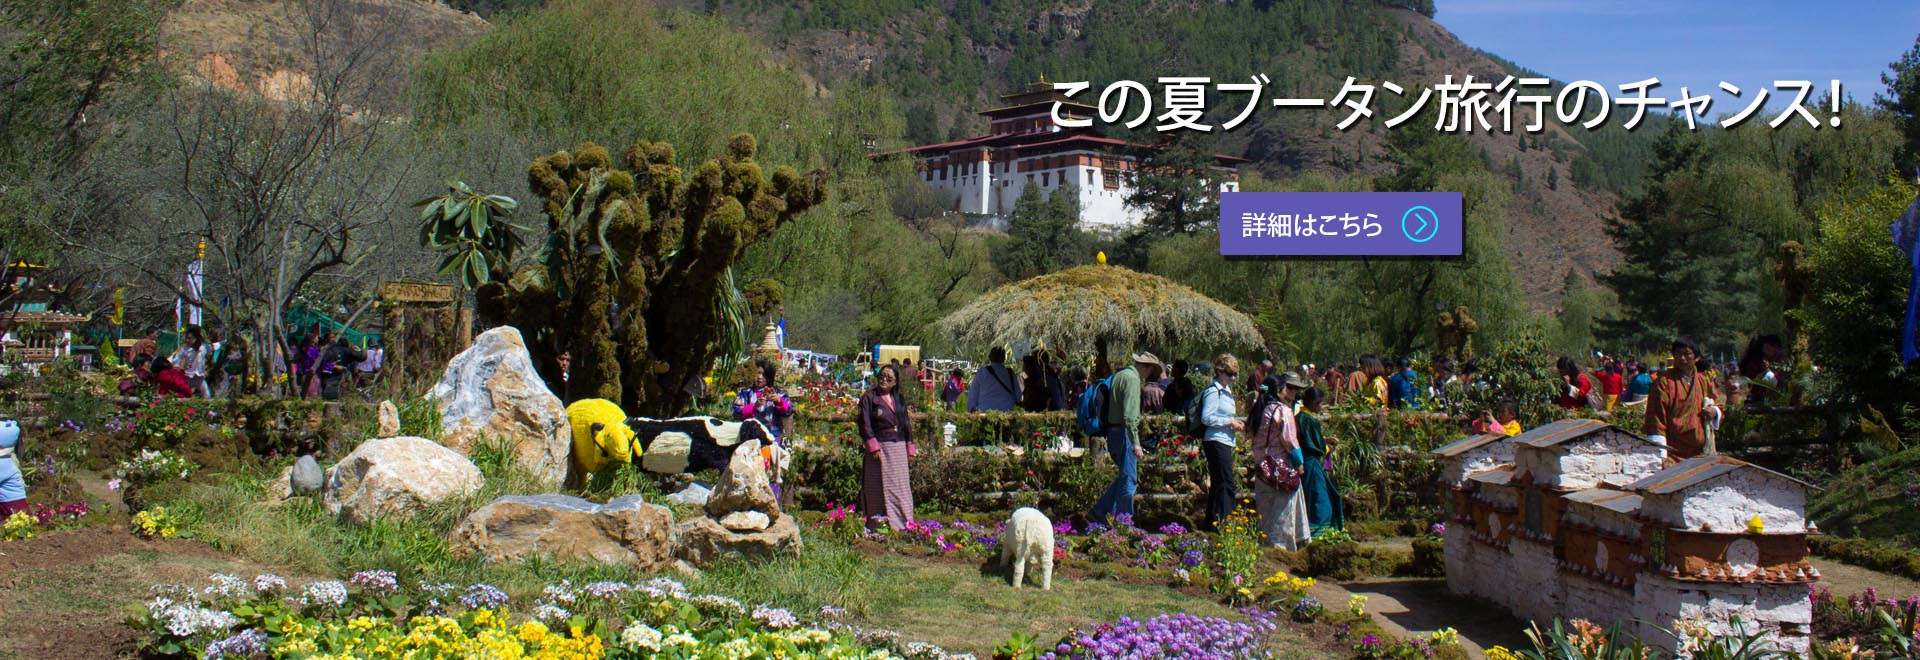 Japan-Bhutan Friendship Offer